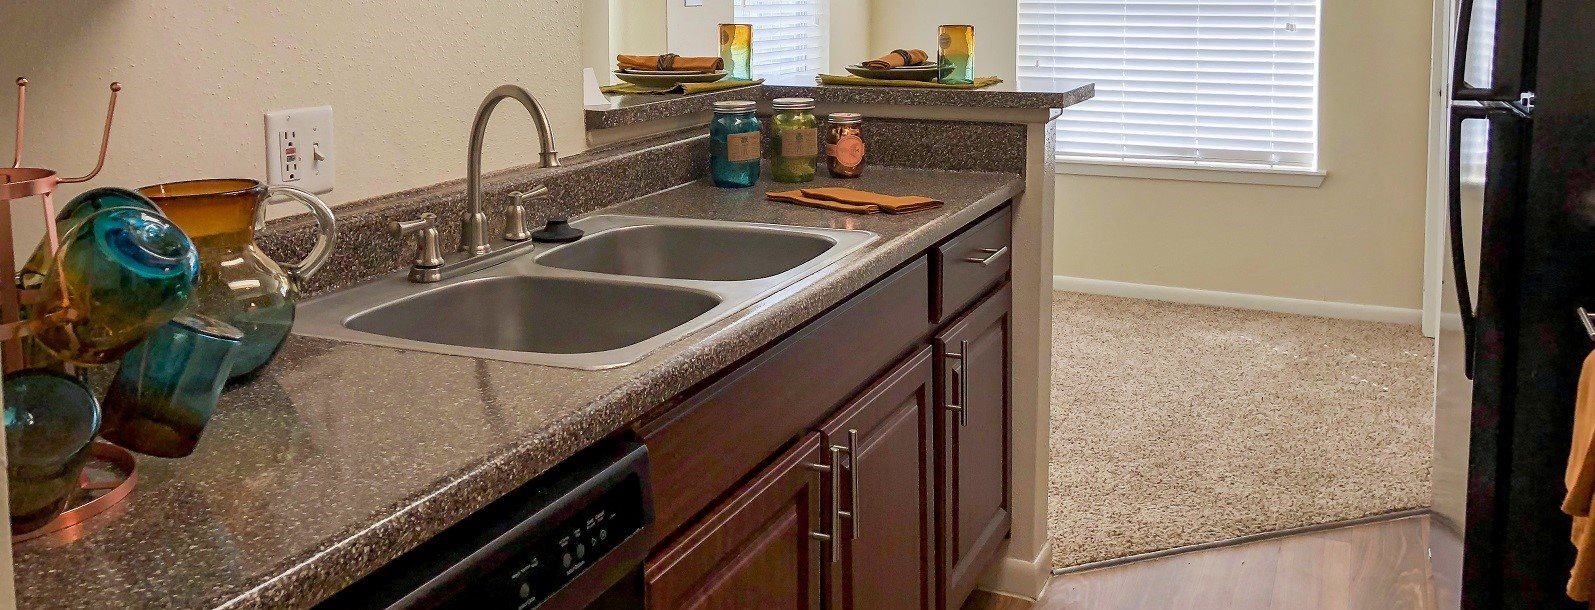 View of kitchen at Piper's Cove Apartments in Webster TX